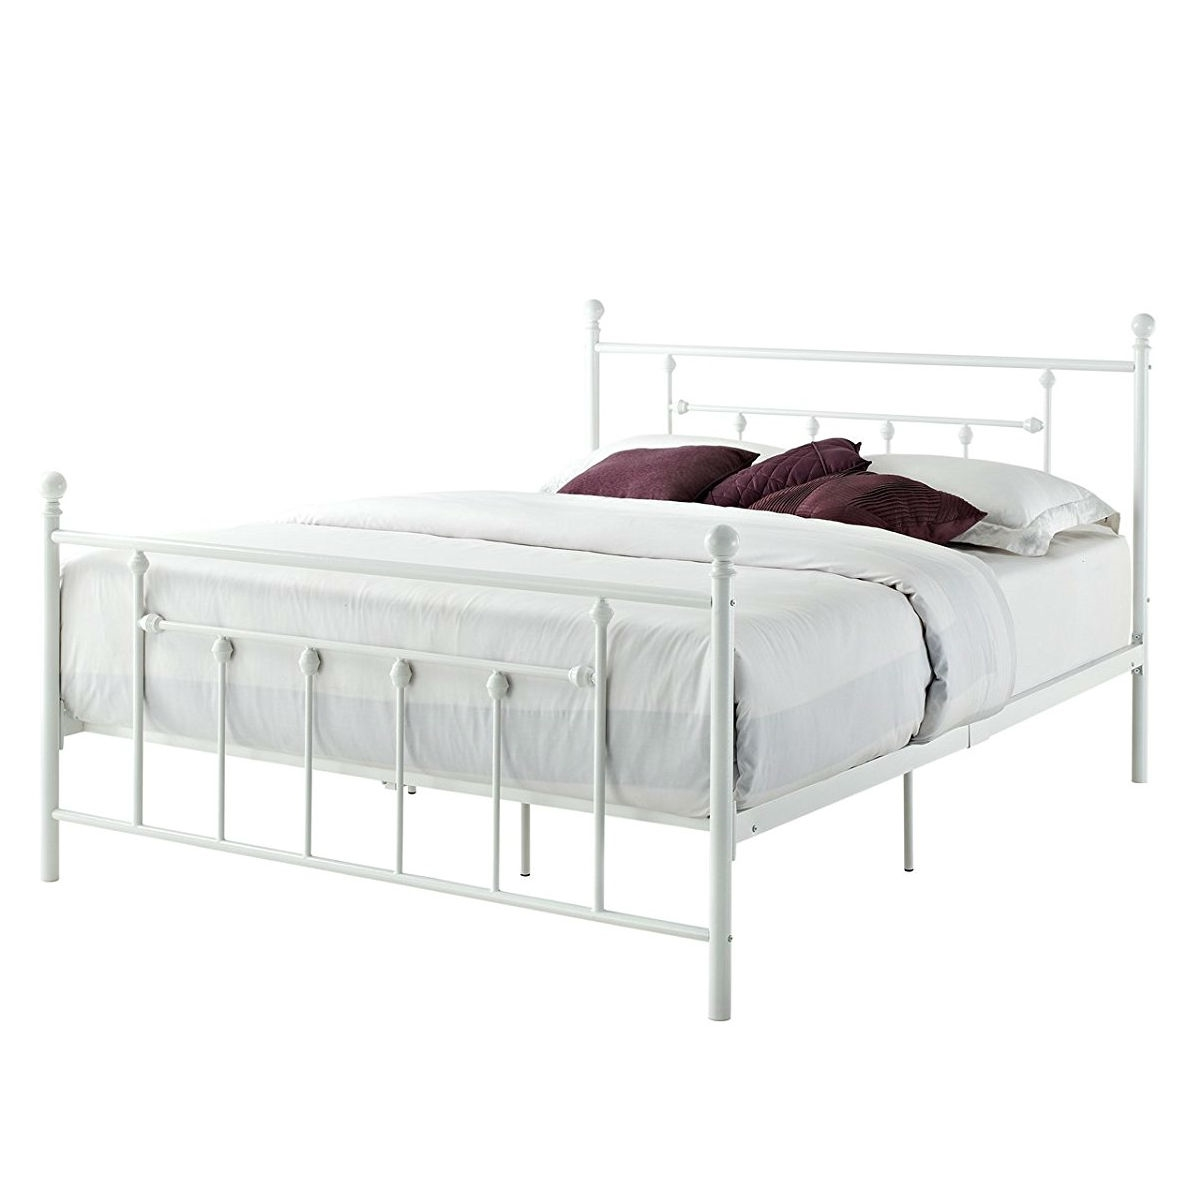 Queen Size White Metal Platform Bed Frame With Headboard And Footboard Fastfurnishings Com